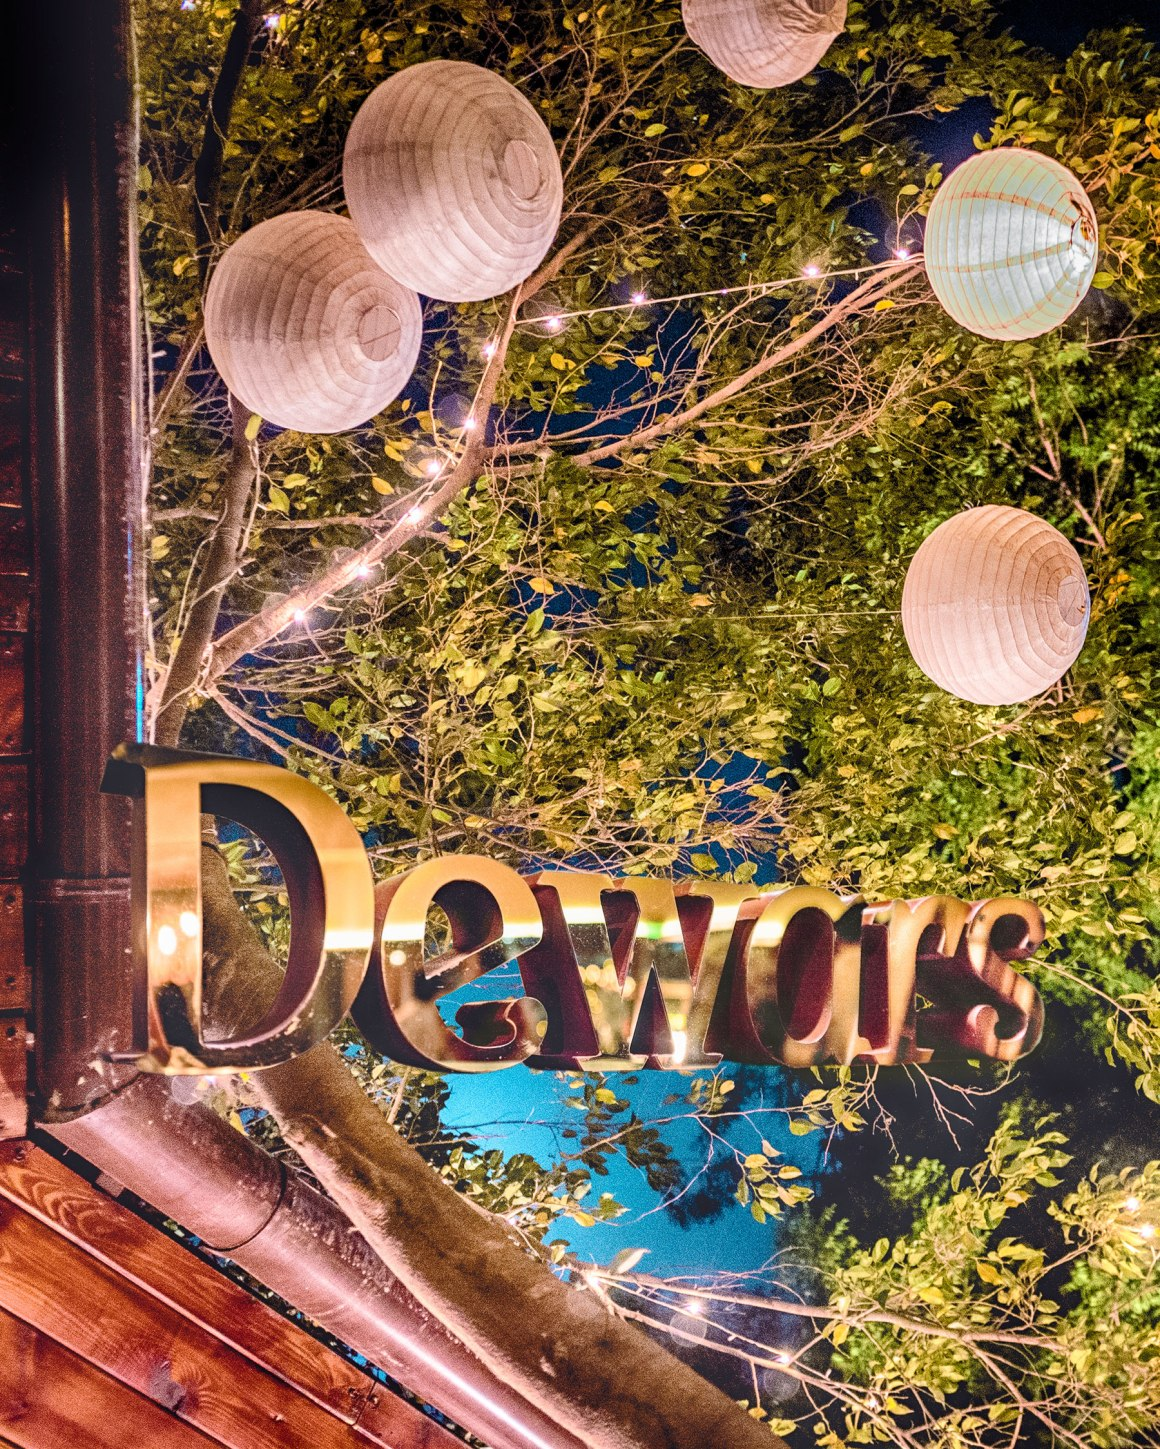 eyesfordining, Naina Redhu, Naina.co, Naina, FoodTalkIndia, Bohca, Dewar's, Dinner, New Delhi, Restaurant, Whiskey, Whisky, Drinks, Malazan Book of The Fallen, Steven Erikson, Eyes For Dining, Lifestyle Photographer, Luxury Photographer, Lifestyle Blogger, Luxury Blogger, Food Photographer, Food Blogger, Professional Photographer, Lifestyle Influencer, Luxury Influencer, Food Influencer, Photo Influencer, India